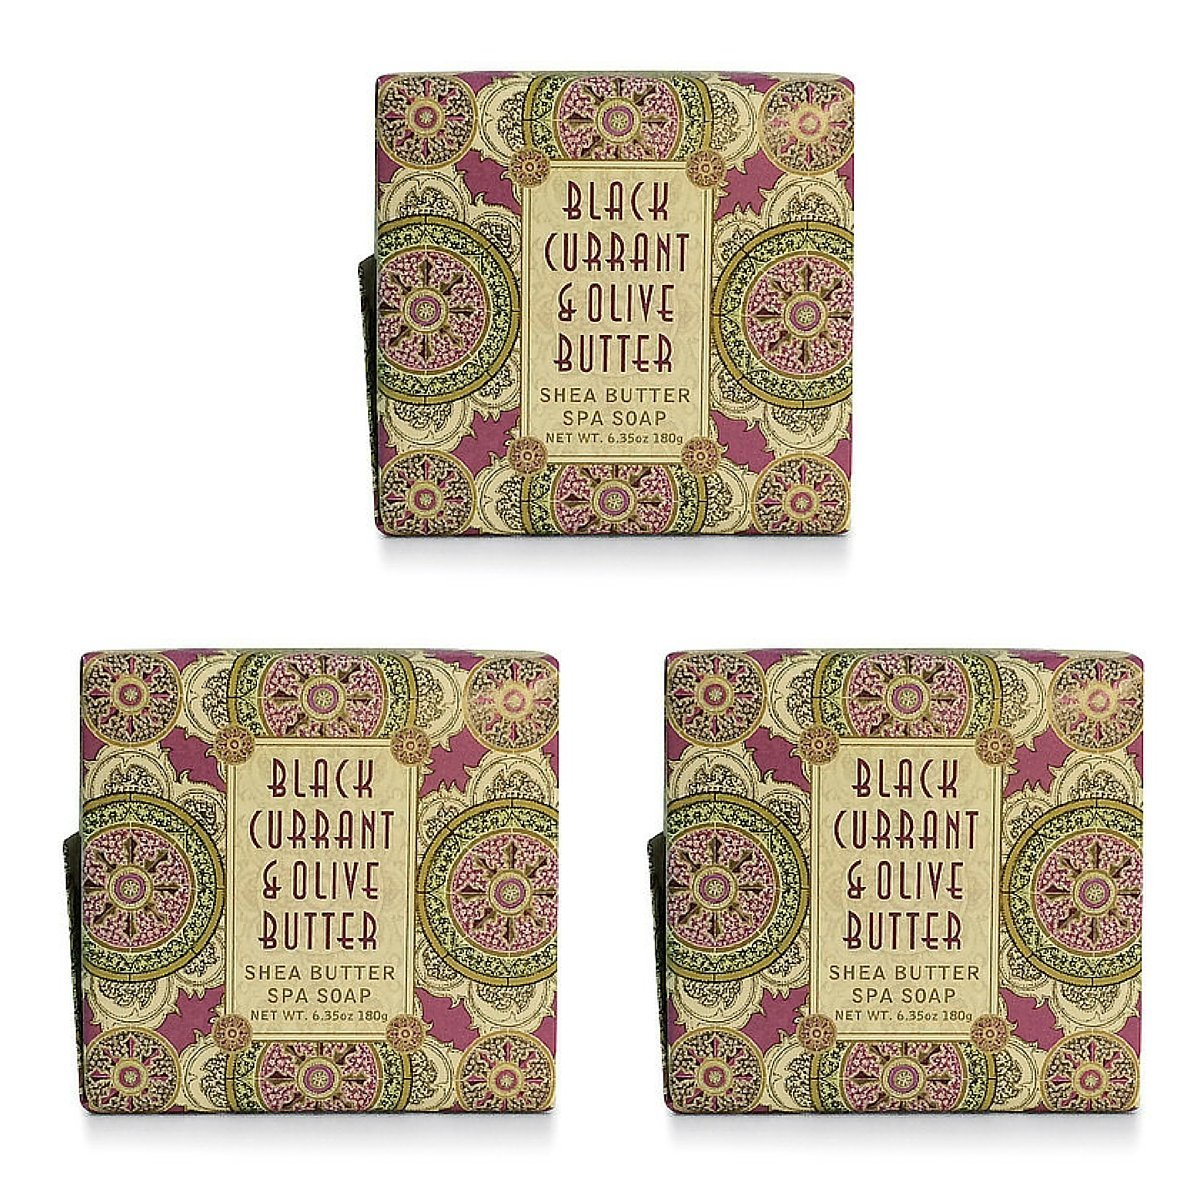 Greenwich Bay BLACK CURRANT OLIVE BUTTER Exfoliating Spa Soap, Enriched with Black Currant Butter, Olive Butter and Shea Butter. No Parabens 6.35 Oz. (3 Pack)